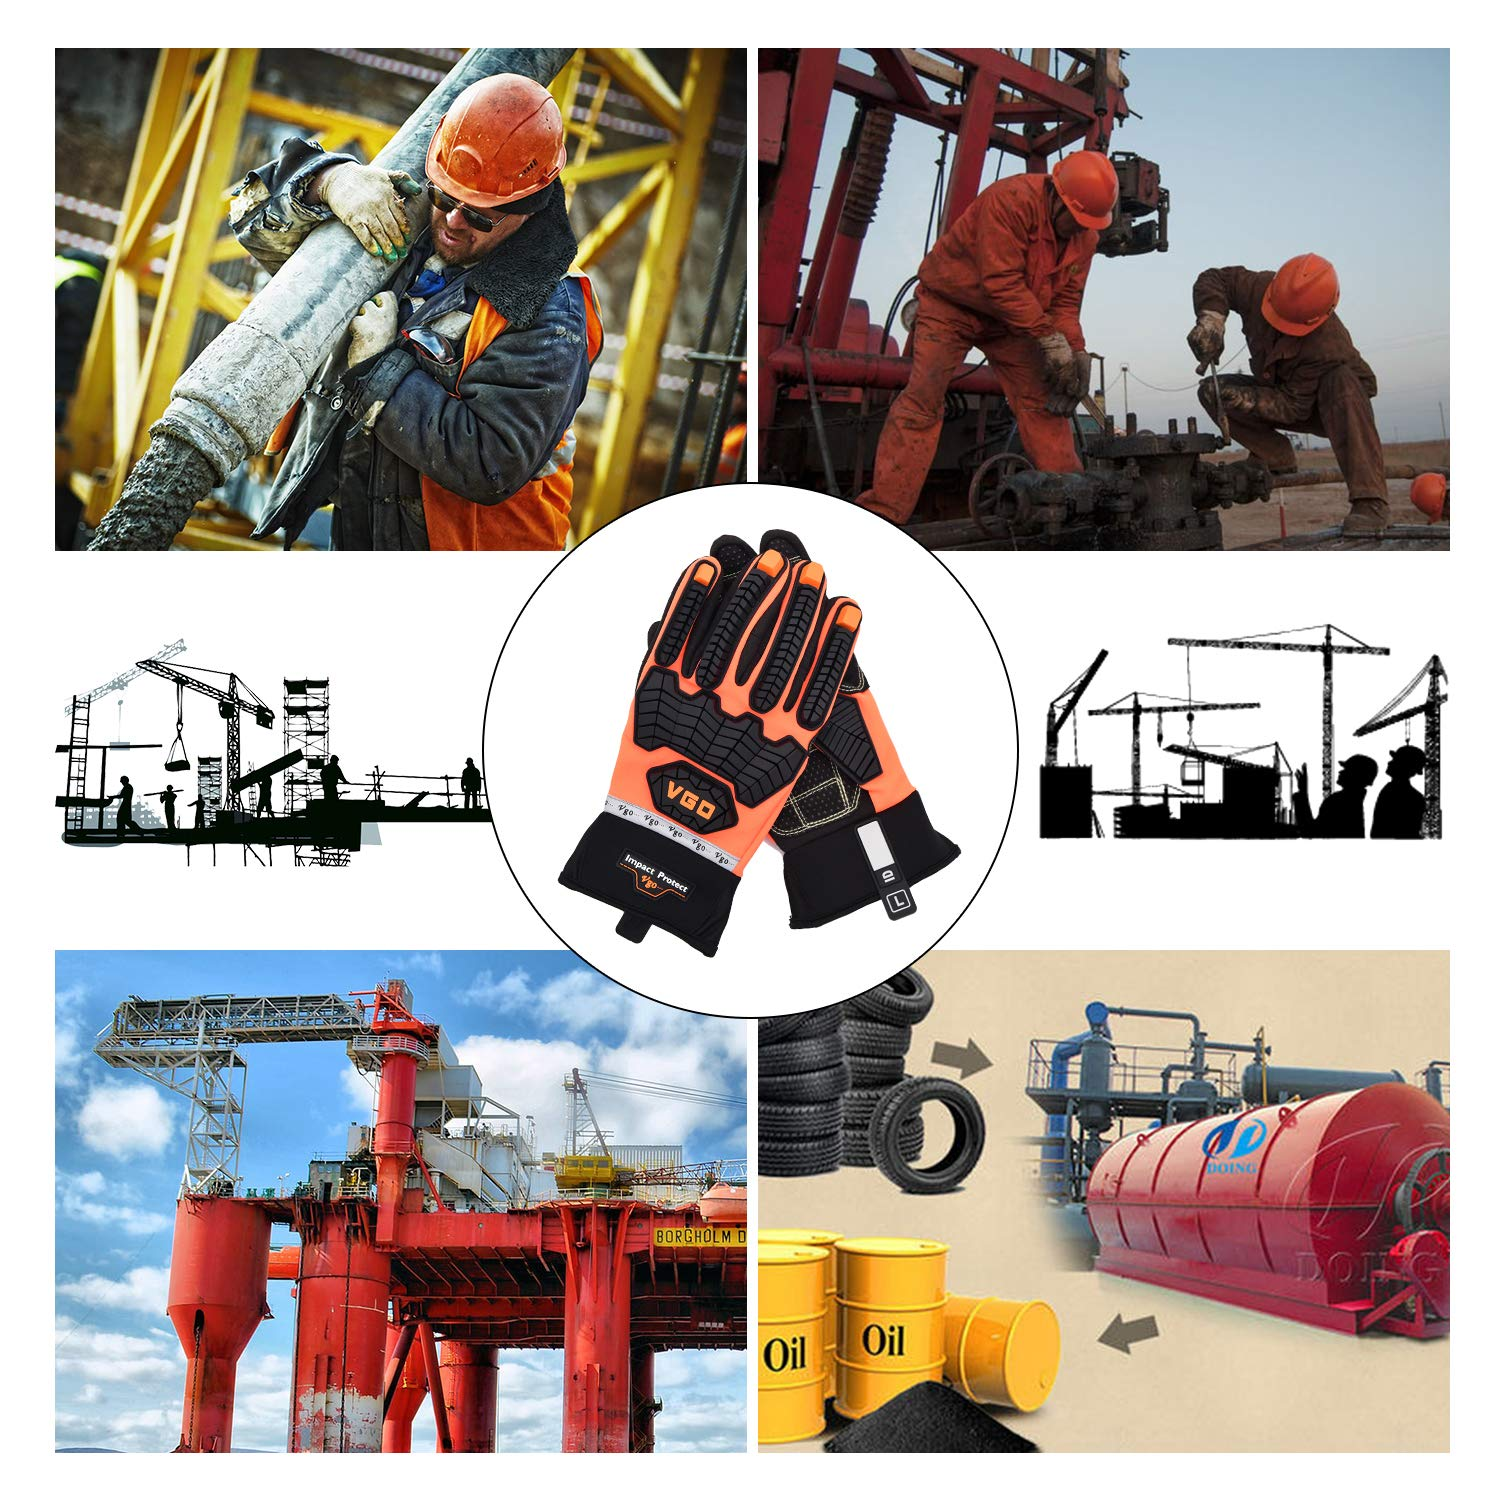 Size L, Orange, SL9697 Vgo OffShore Anti Vibration Oil-proof Impact protection Water-Repellent Safety Synthetic Leather Work Glove